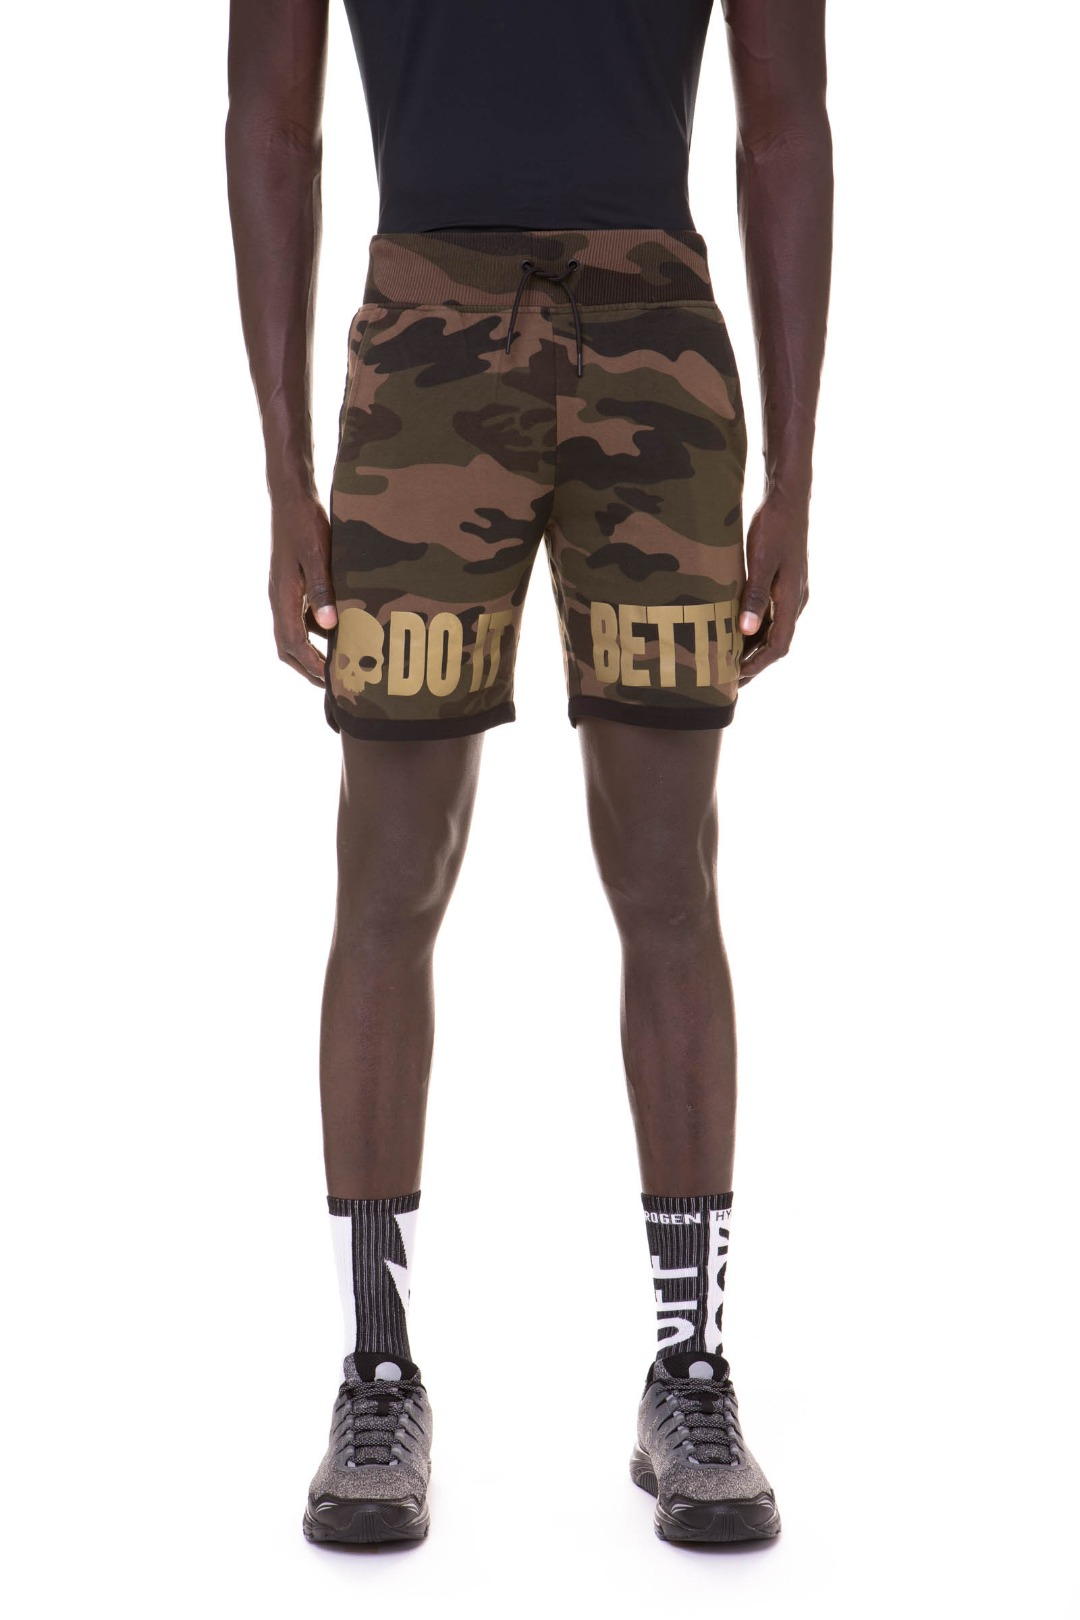 Hydrogen Shorts Do It Better Cmo Militare Uomo